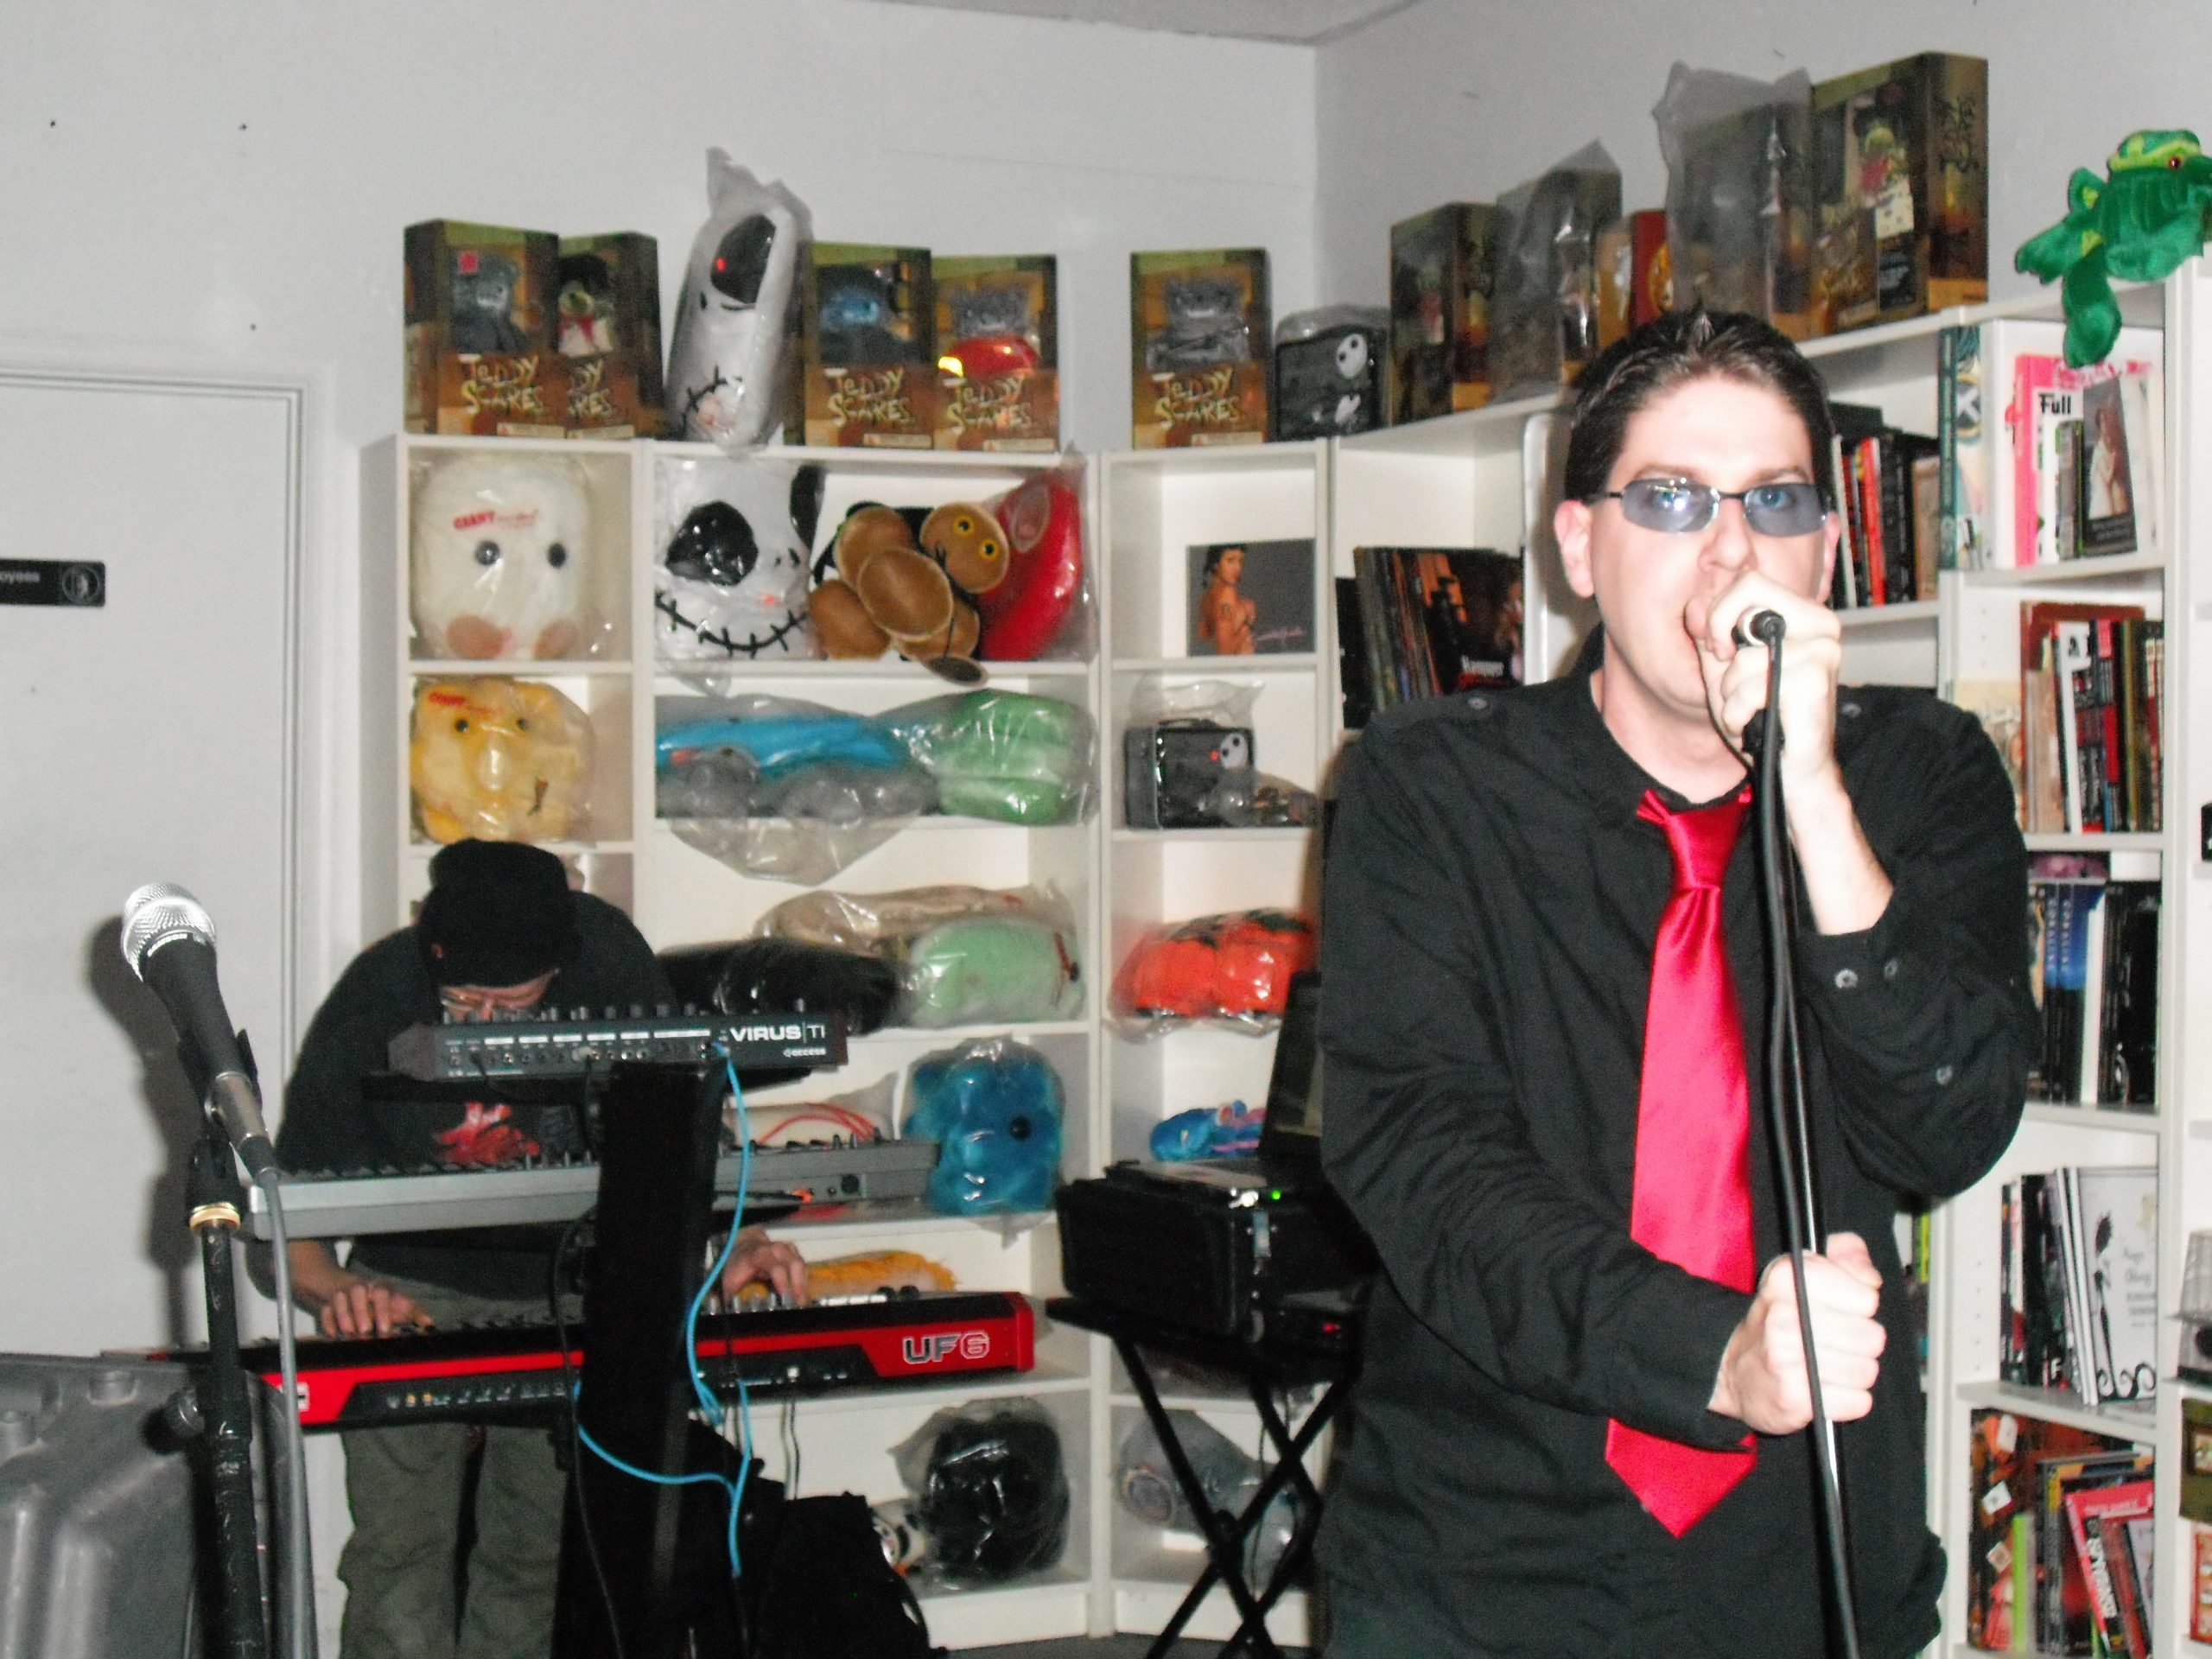 The band actually performed in the Digital Ferret record store in Philadelphia, 2009